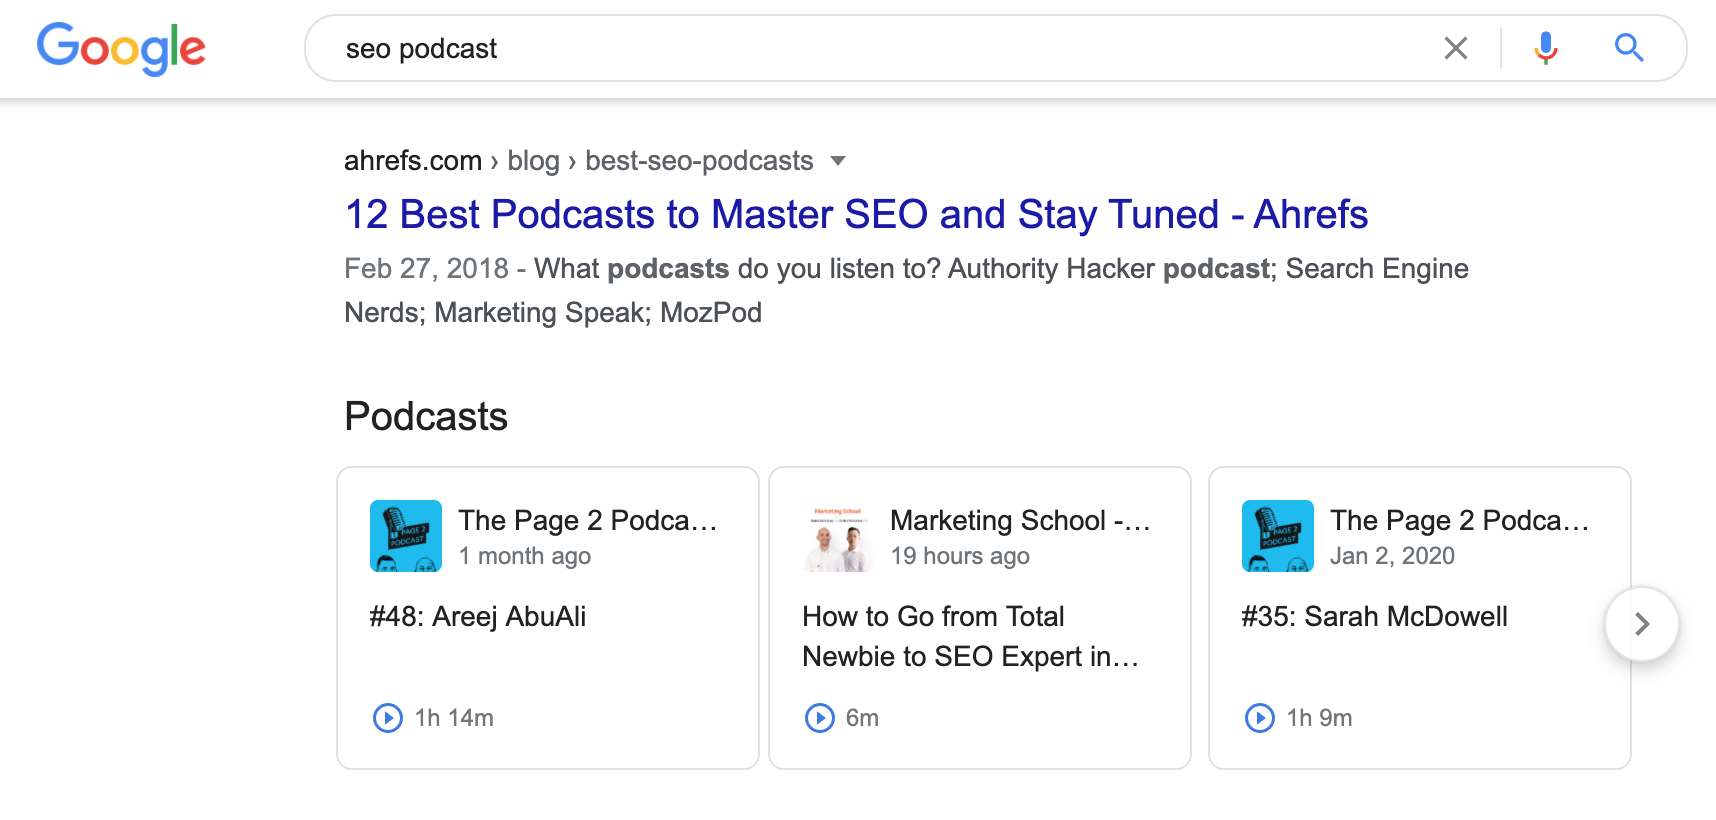 Podcast rich results in Google SERPs